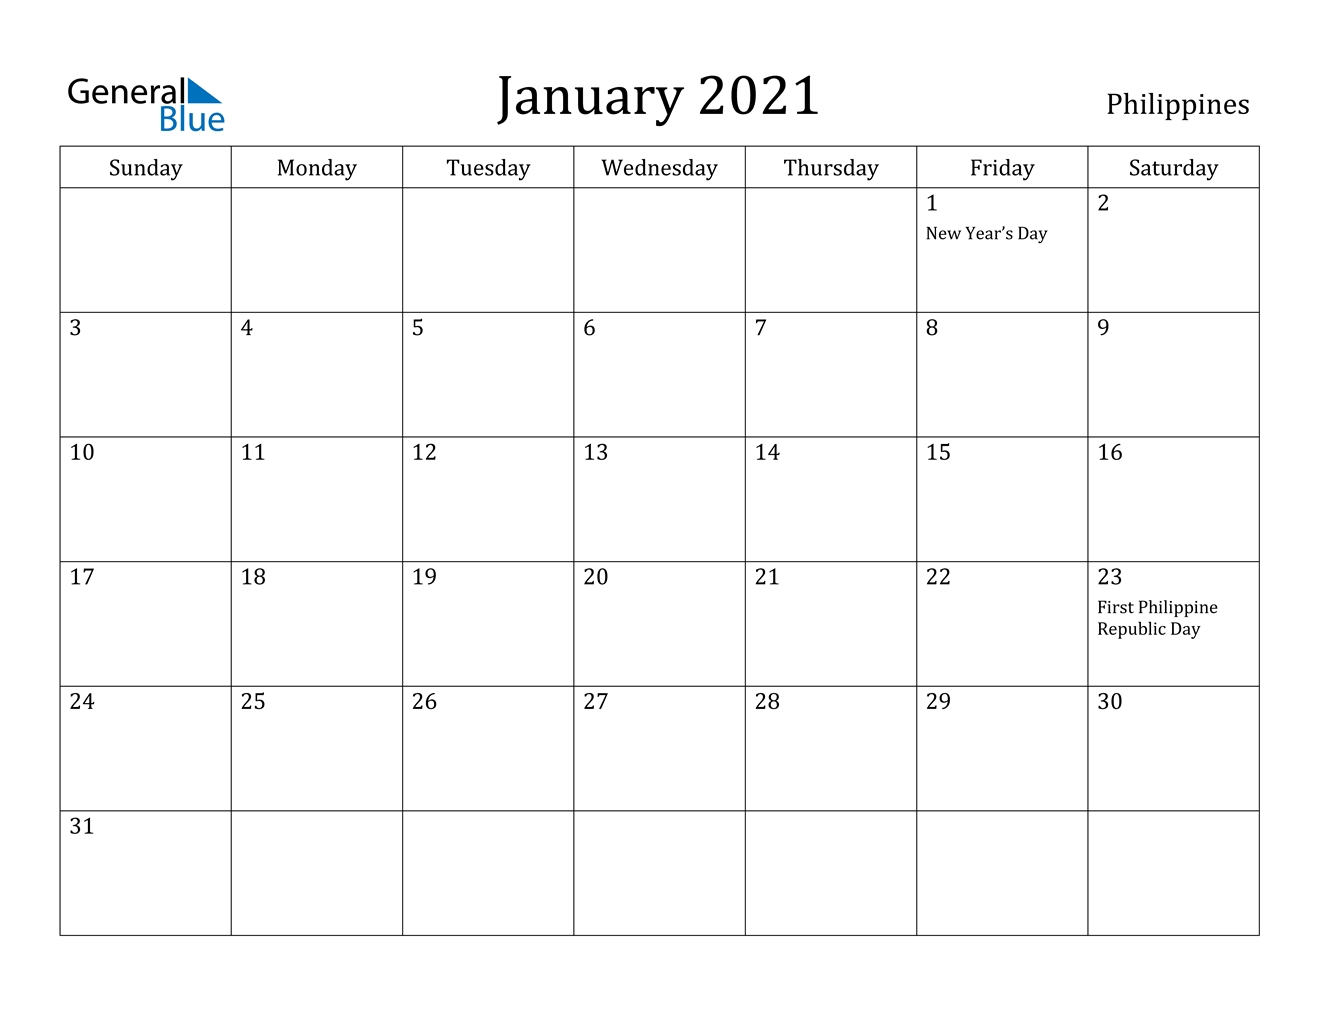 January 2021 Calendar - Philippines-Download 2021 Philippine Blank Calendar In Excel